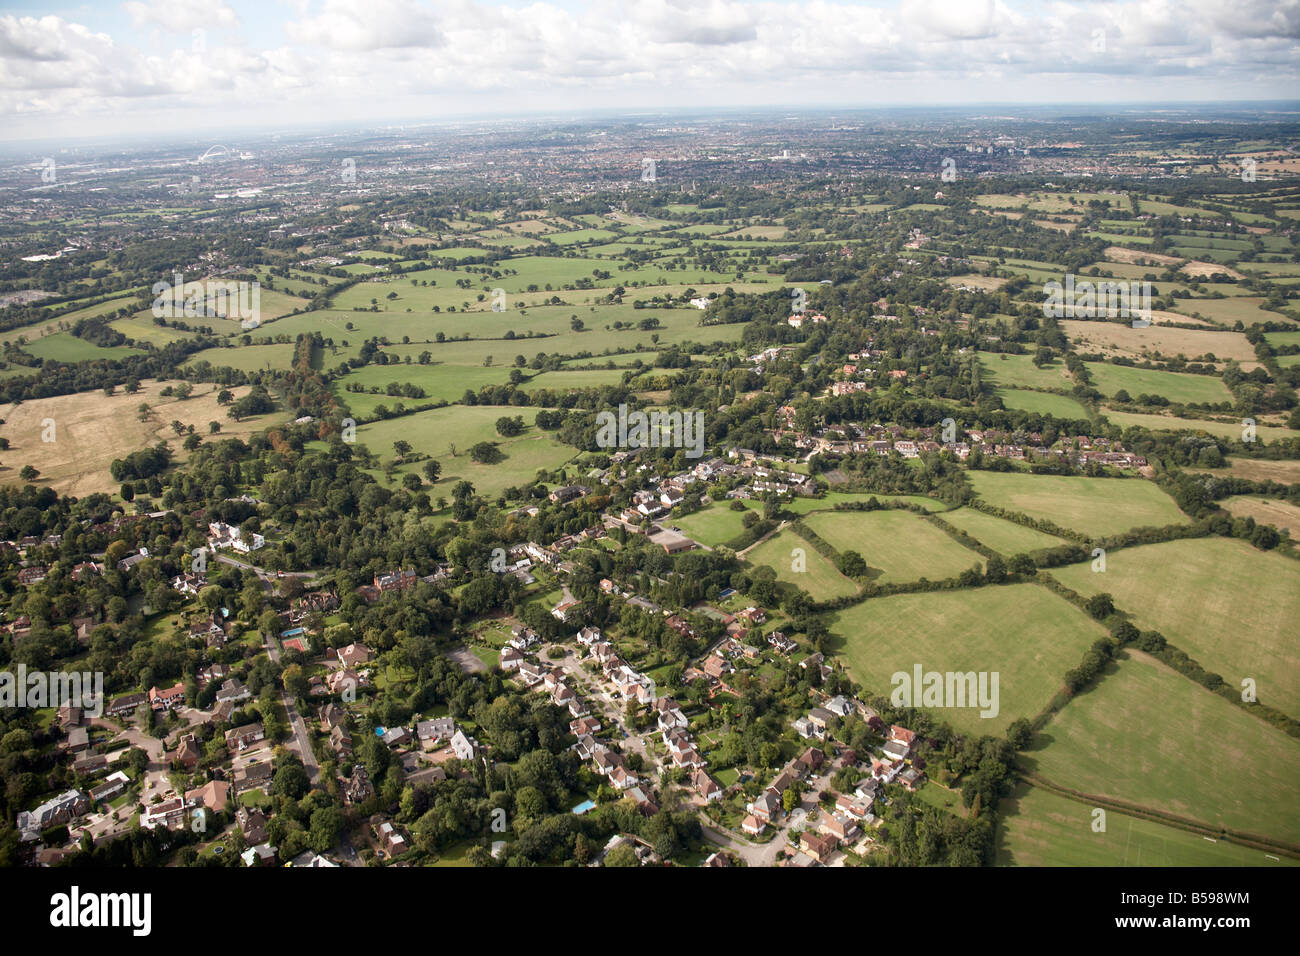 Aerial view south west of suburban houses fields trees Totteridge Common London N20 England UK - Stock Image